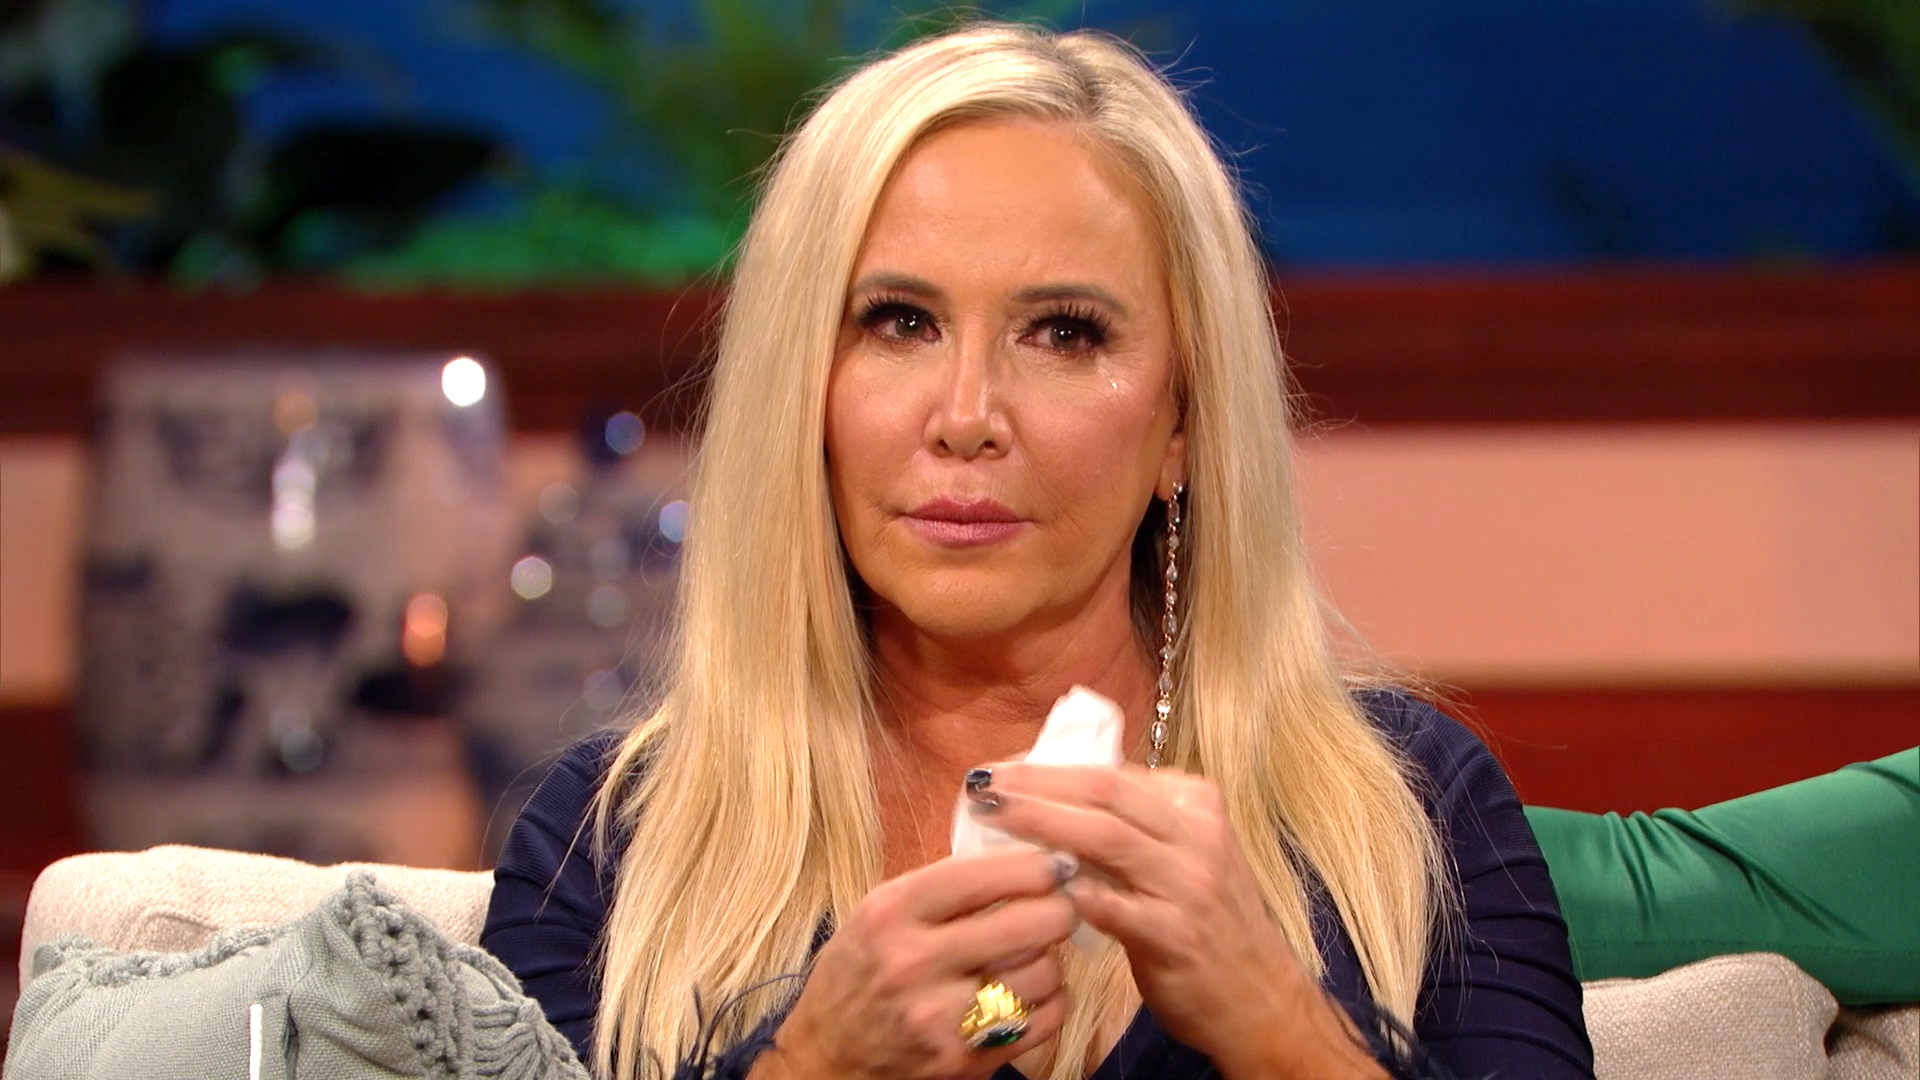 We Now Know What Upset Shannon Beador So Much During The Real Housewives of Orange County Jamaica Trip